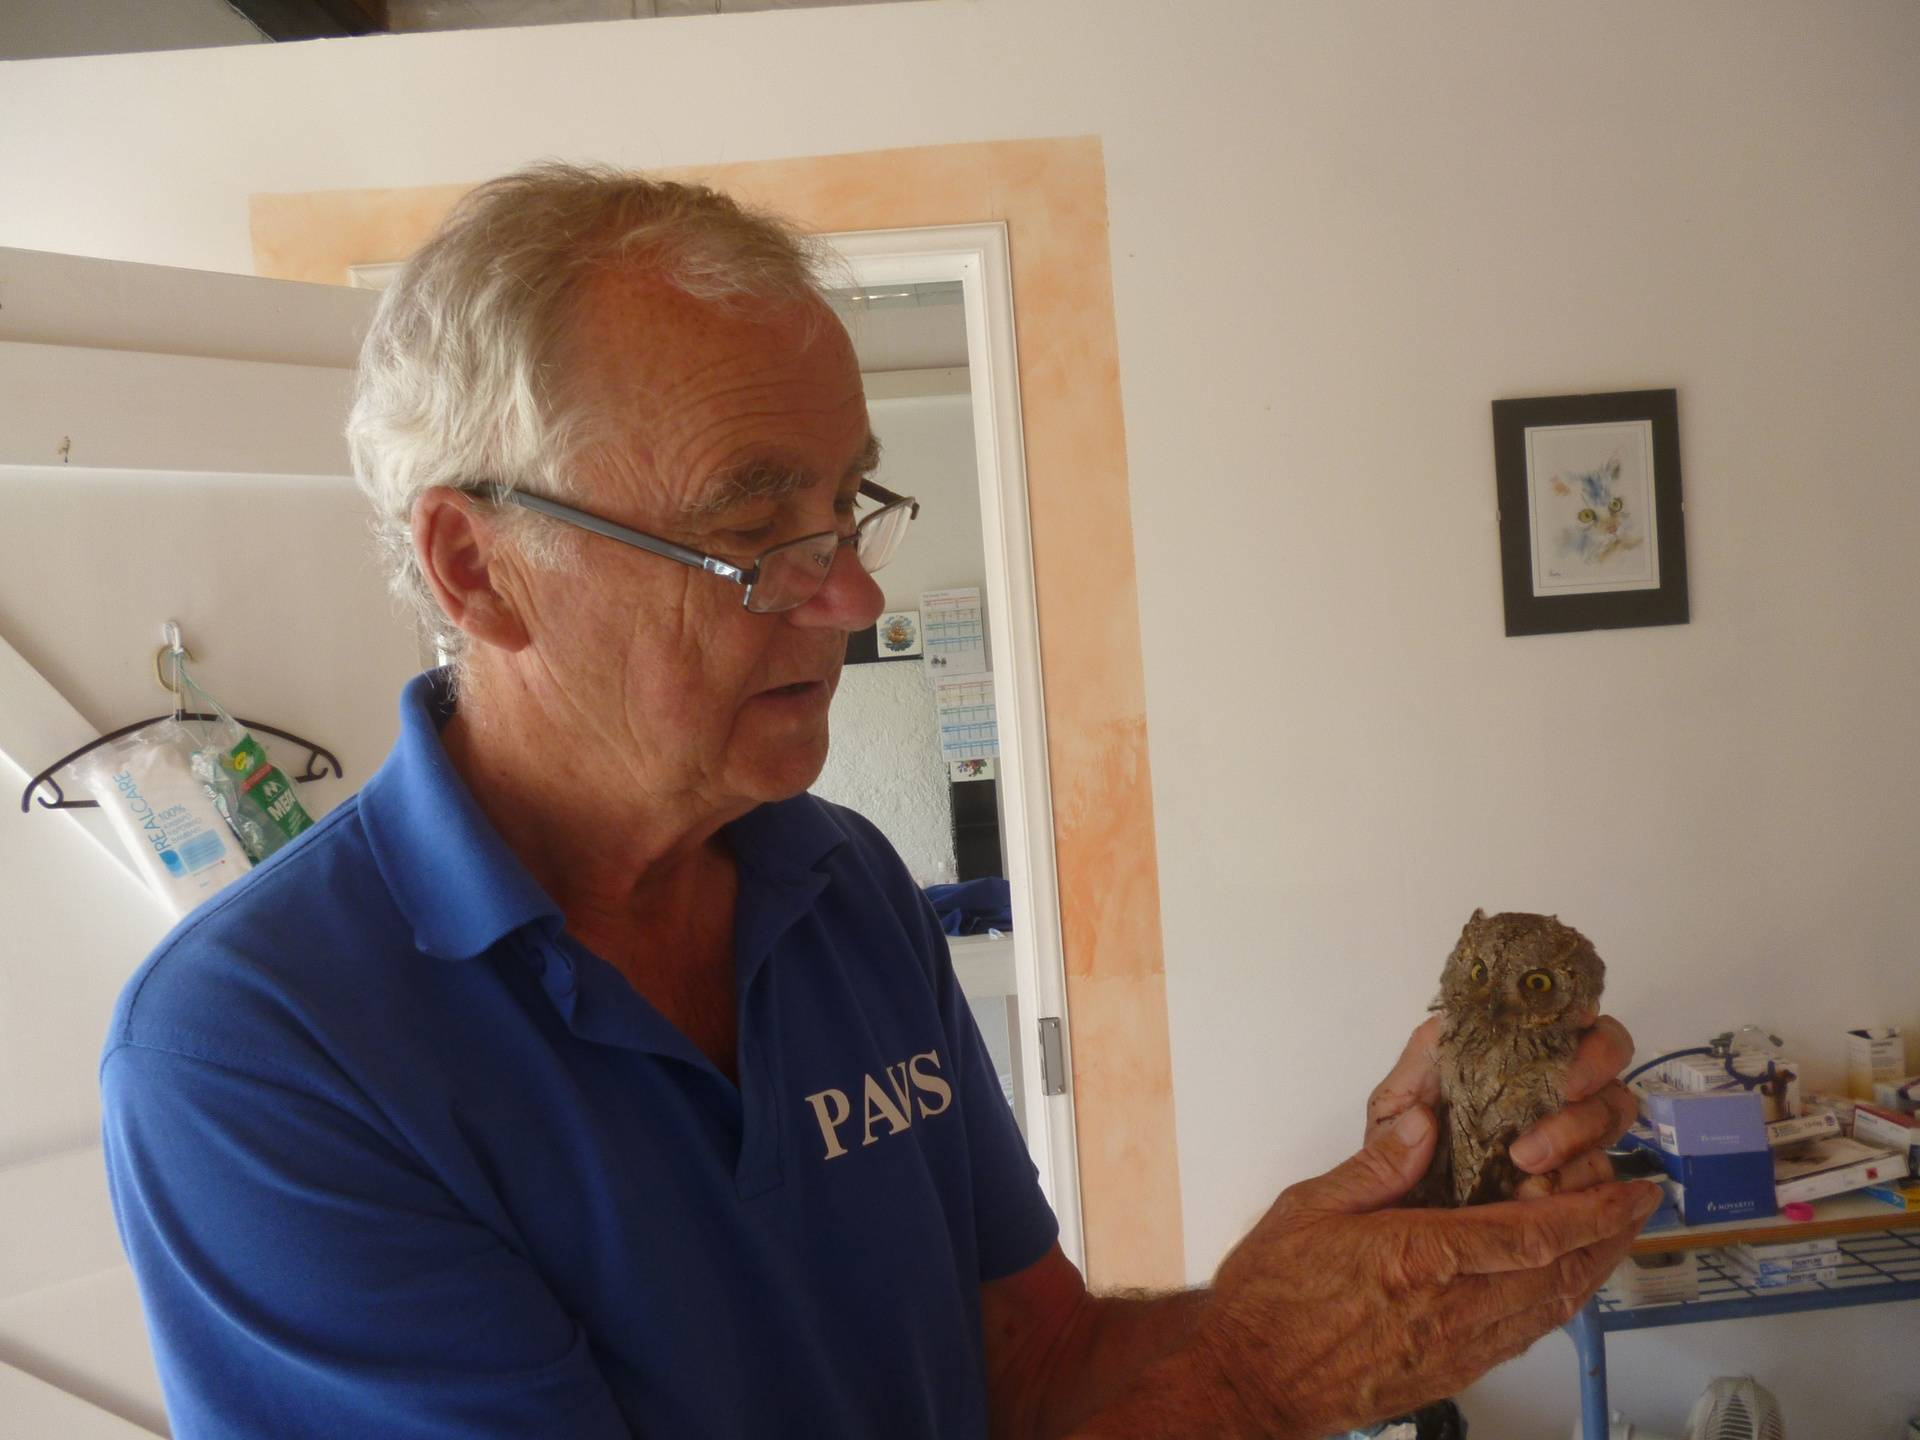 Russell and the owl